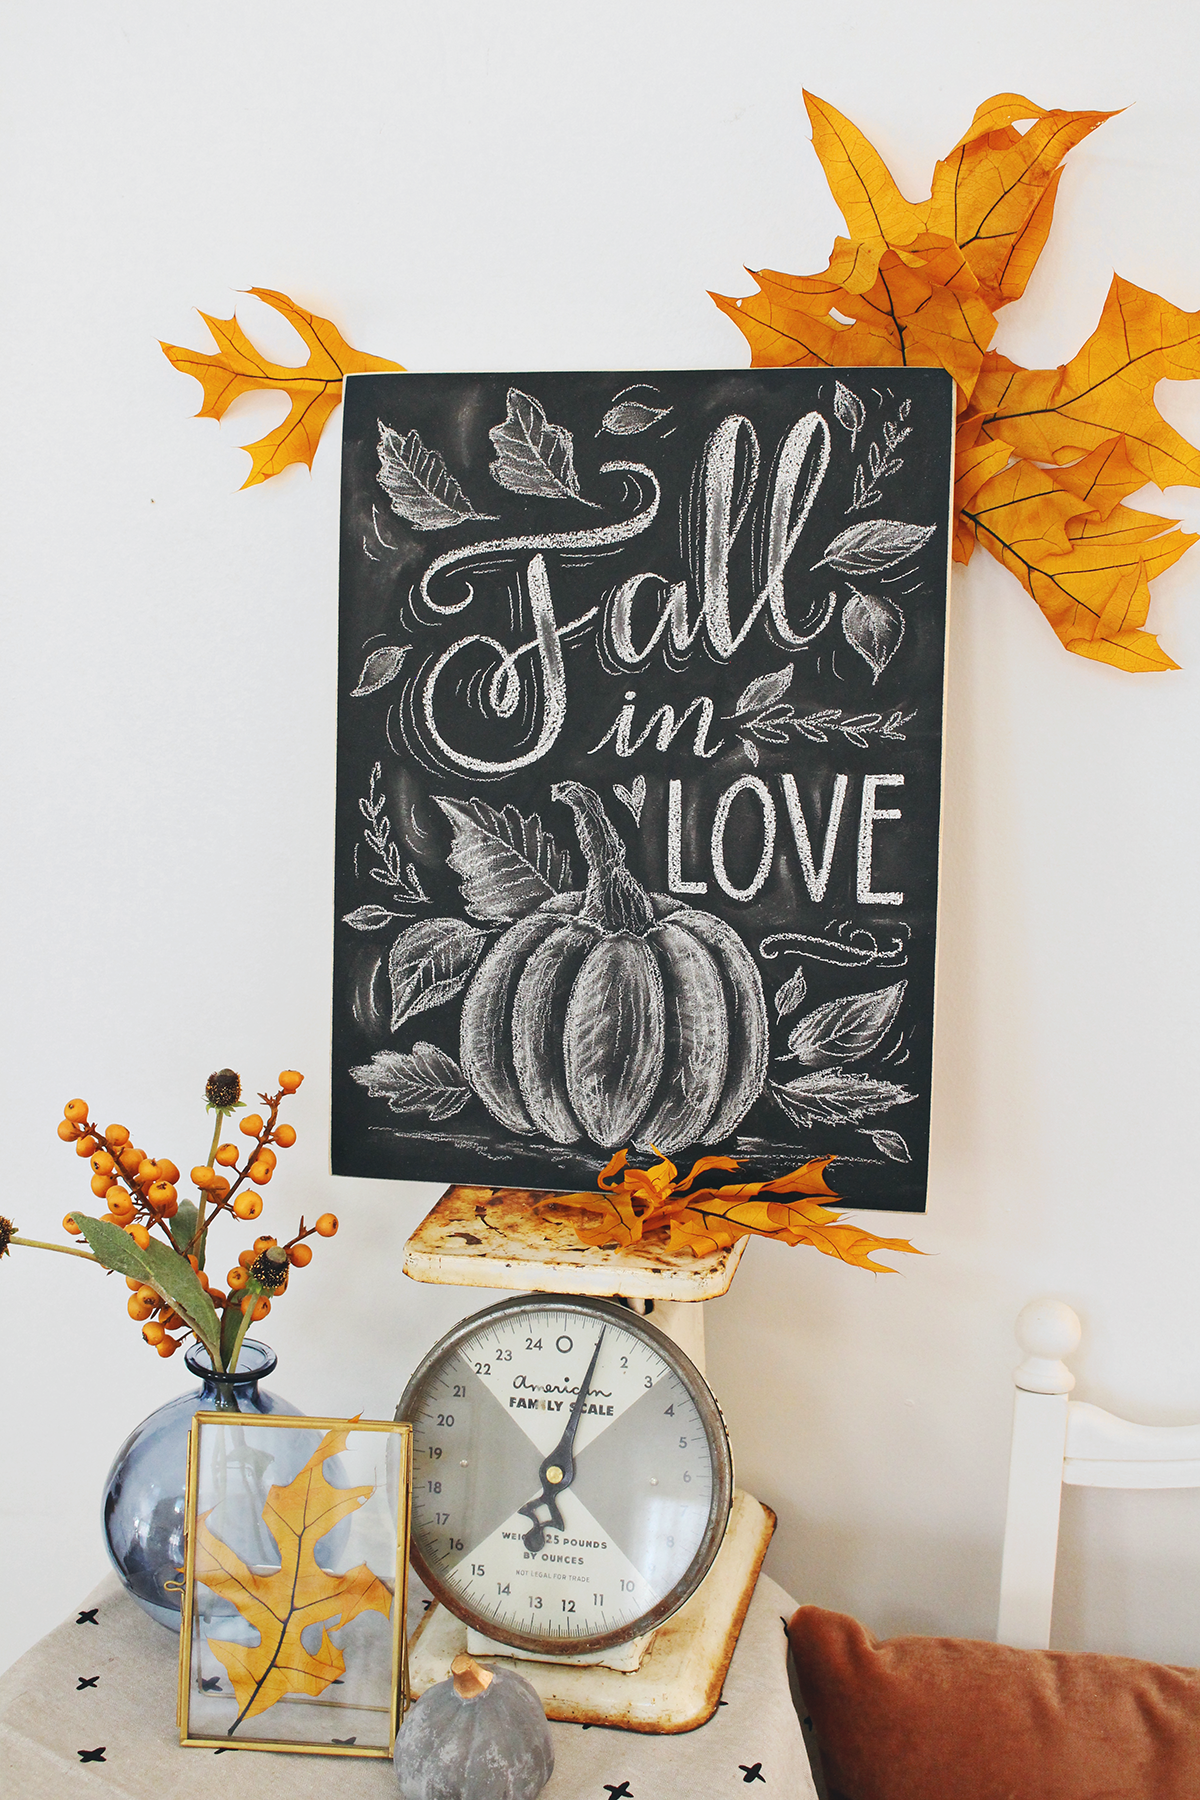 Chalkboard decorating for fall! Fall in Love Pumpkin and Leaves Chalk art design by Valerie McKeehan of Lily & Val - Make yours at our upcoming Chalk Project Night